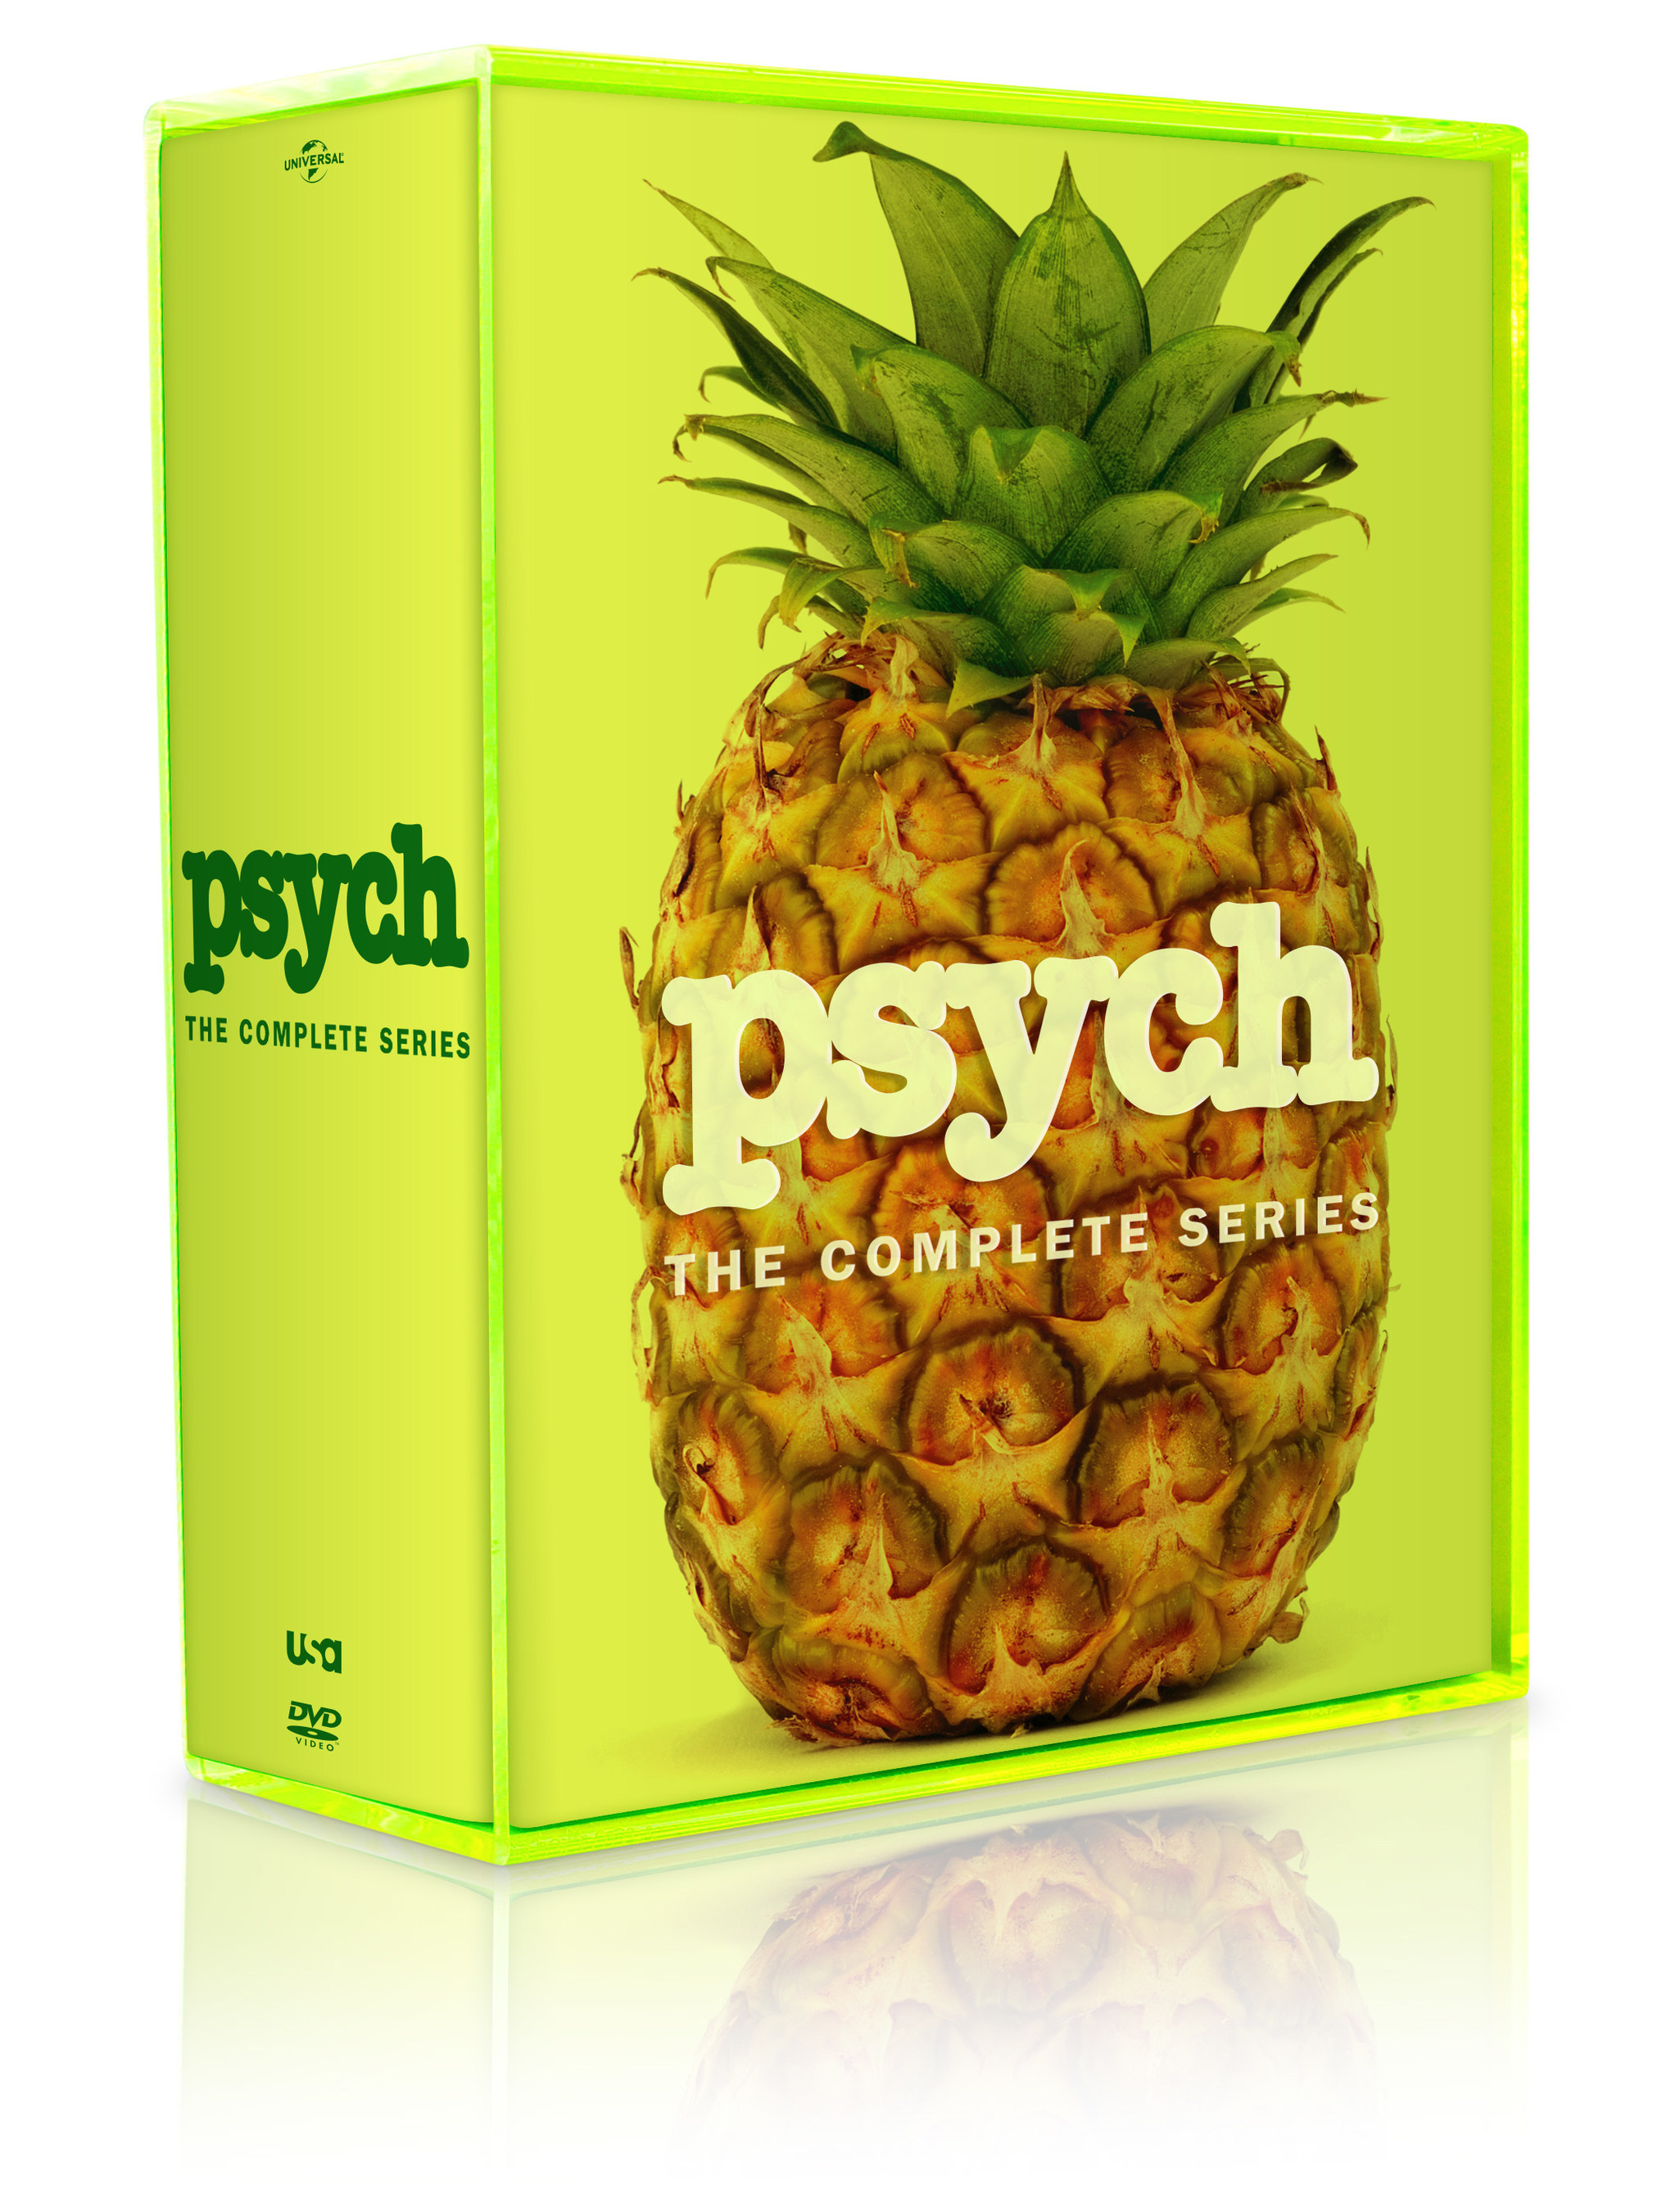 PSYCH: The Complete Series Coming to DVD This October